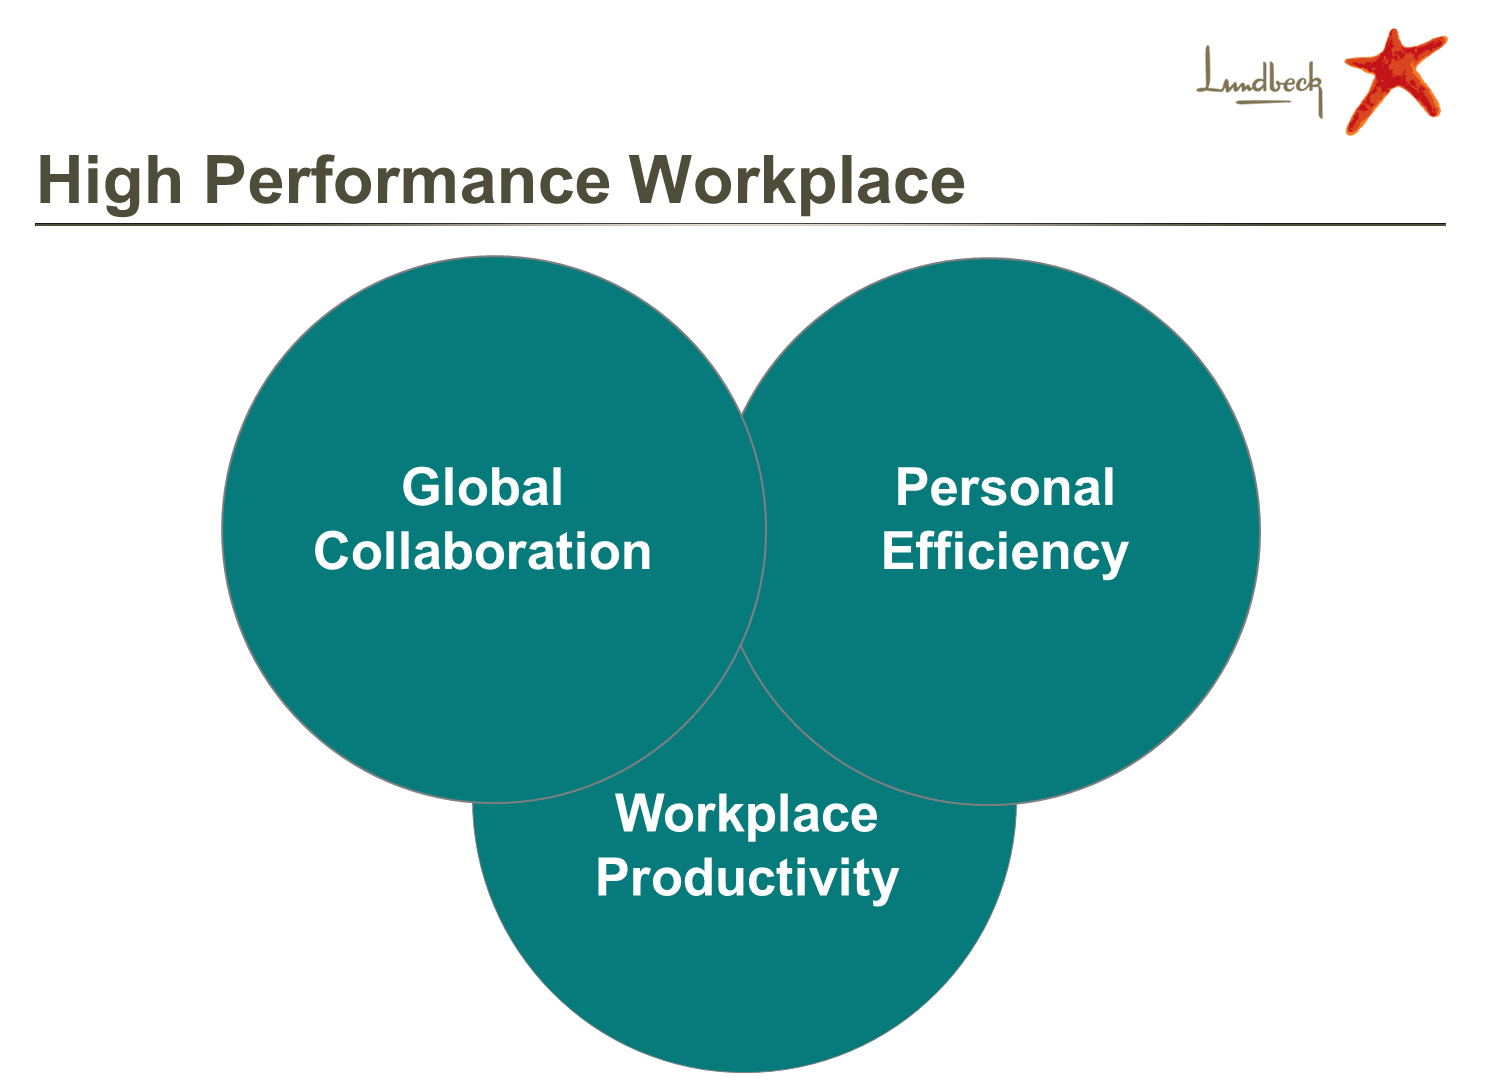 High performance workplace